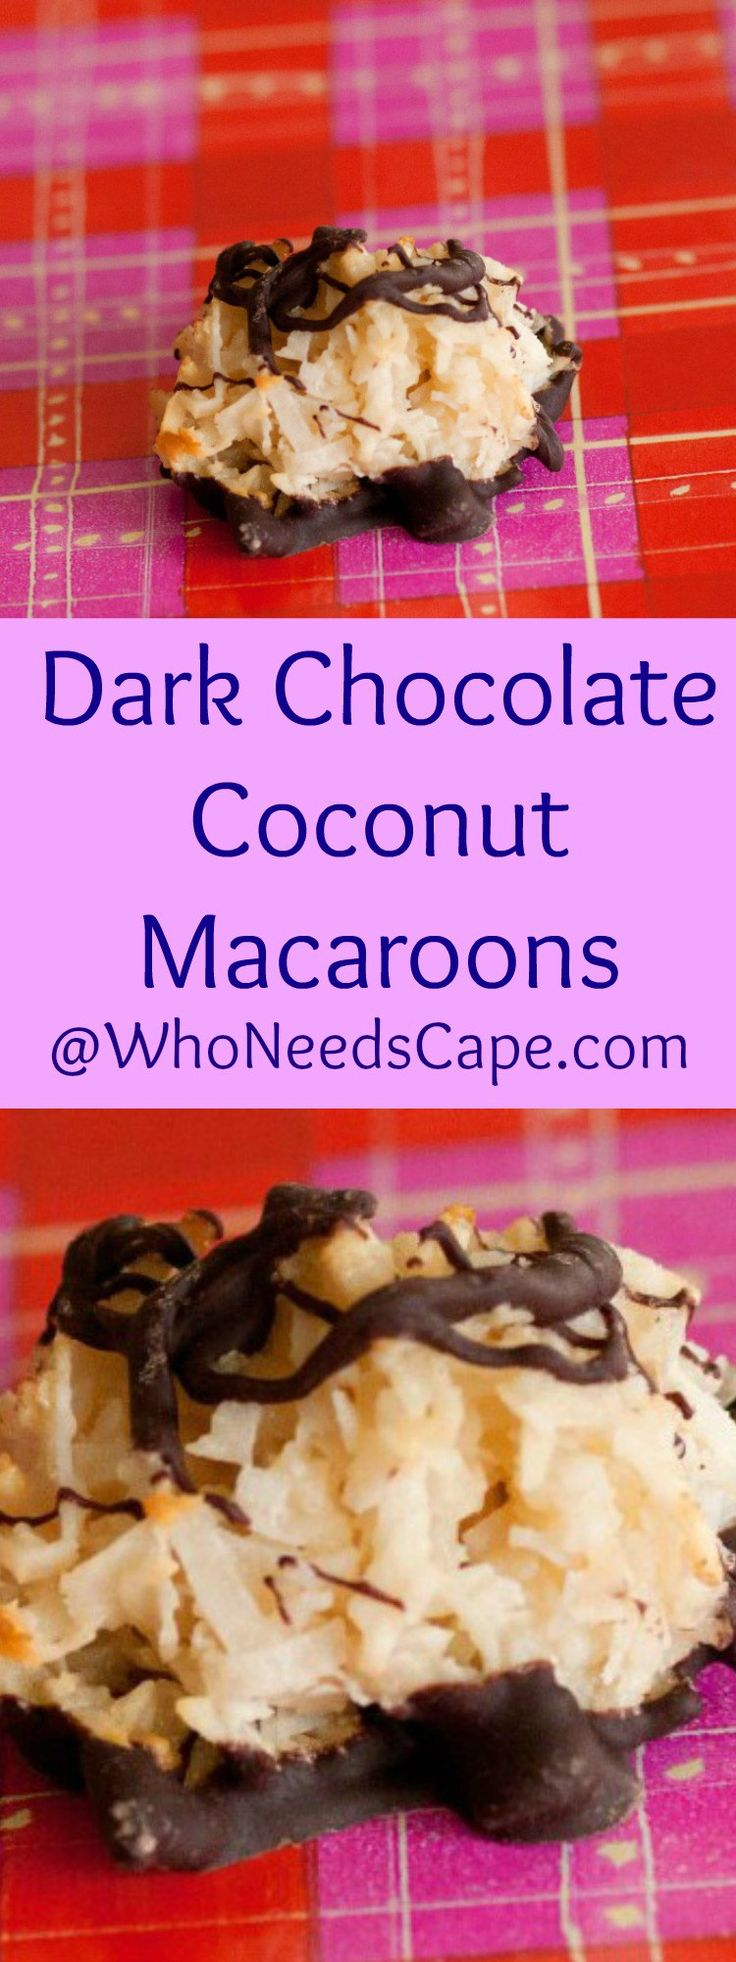 ... Coconut Macaroons on Pinterest | Coconut macaroons, Macaroons and